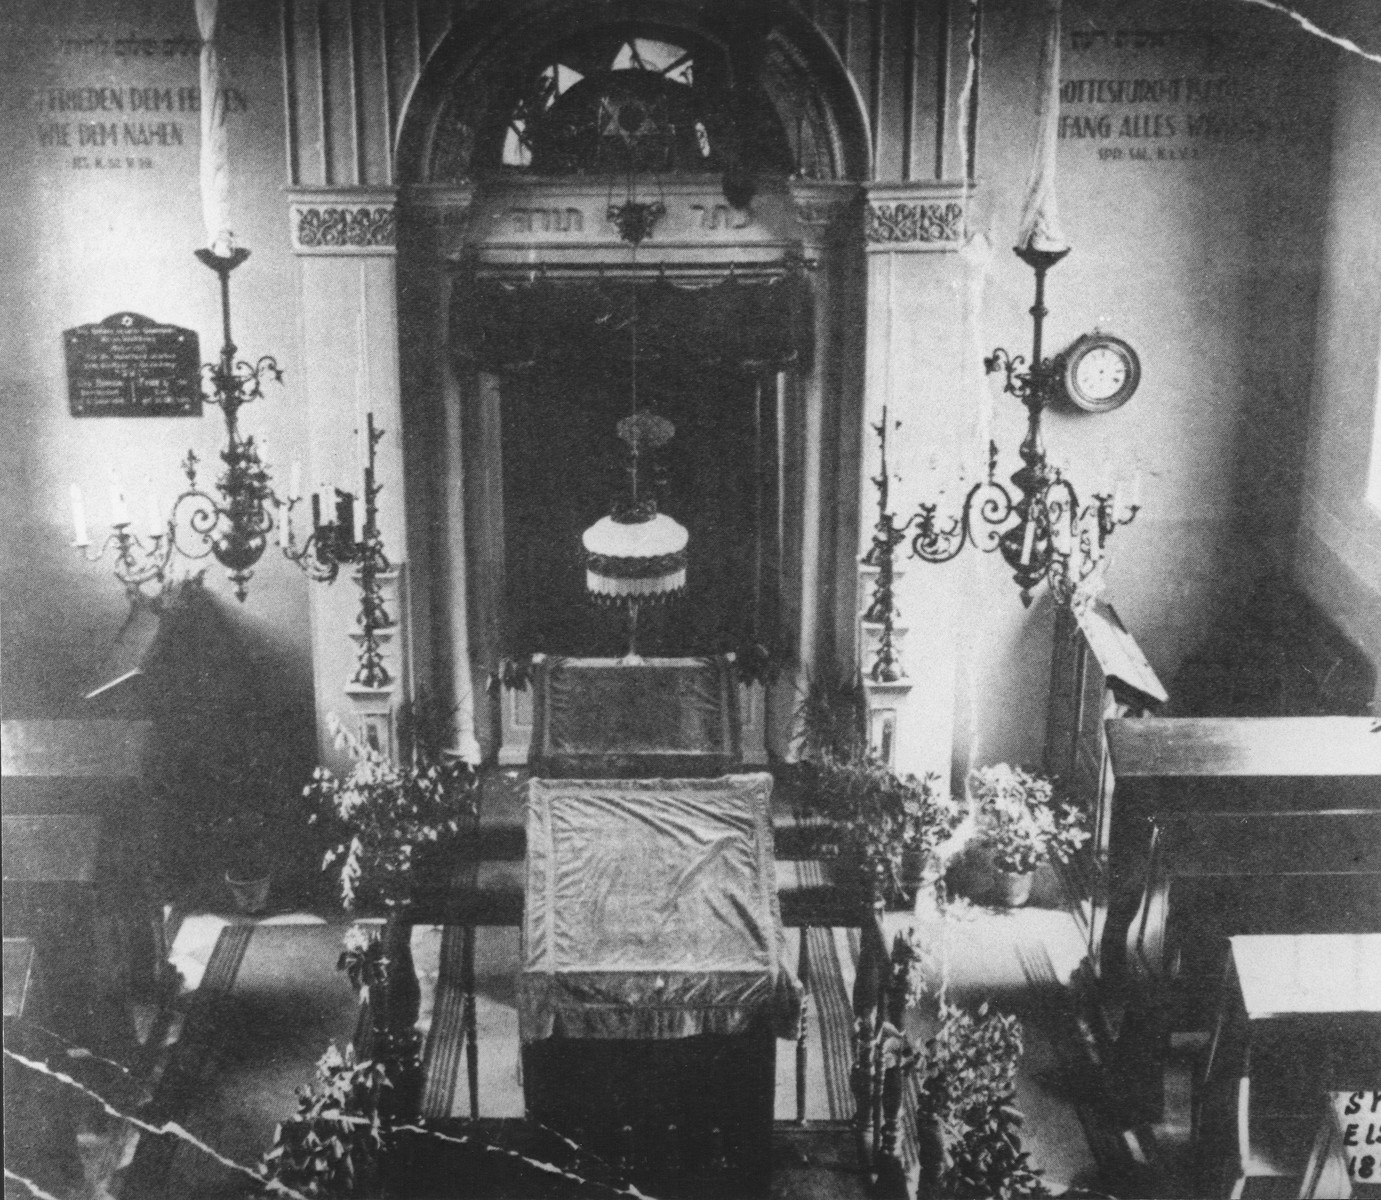 View of the sanctuary of the synagogue in Elsdorf, Germany before its destruction on Kristallnacht.